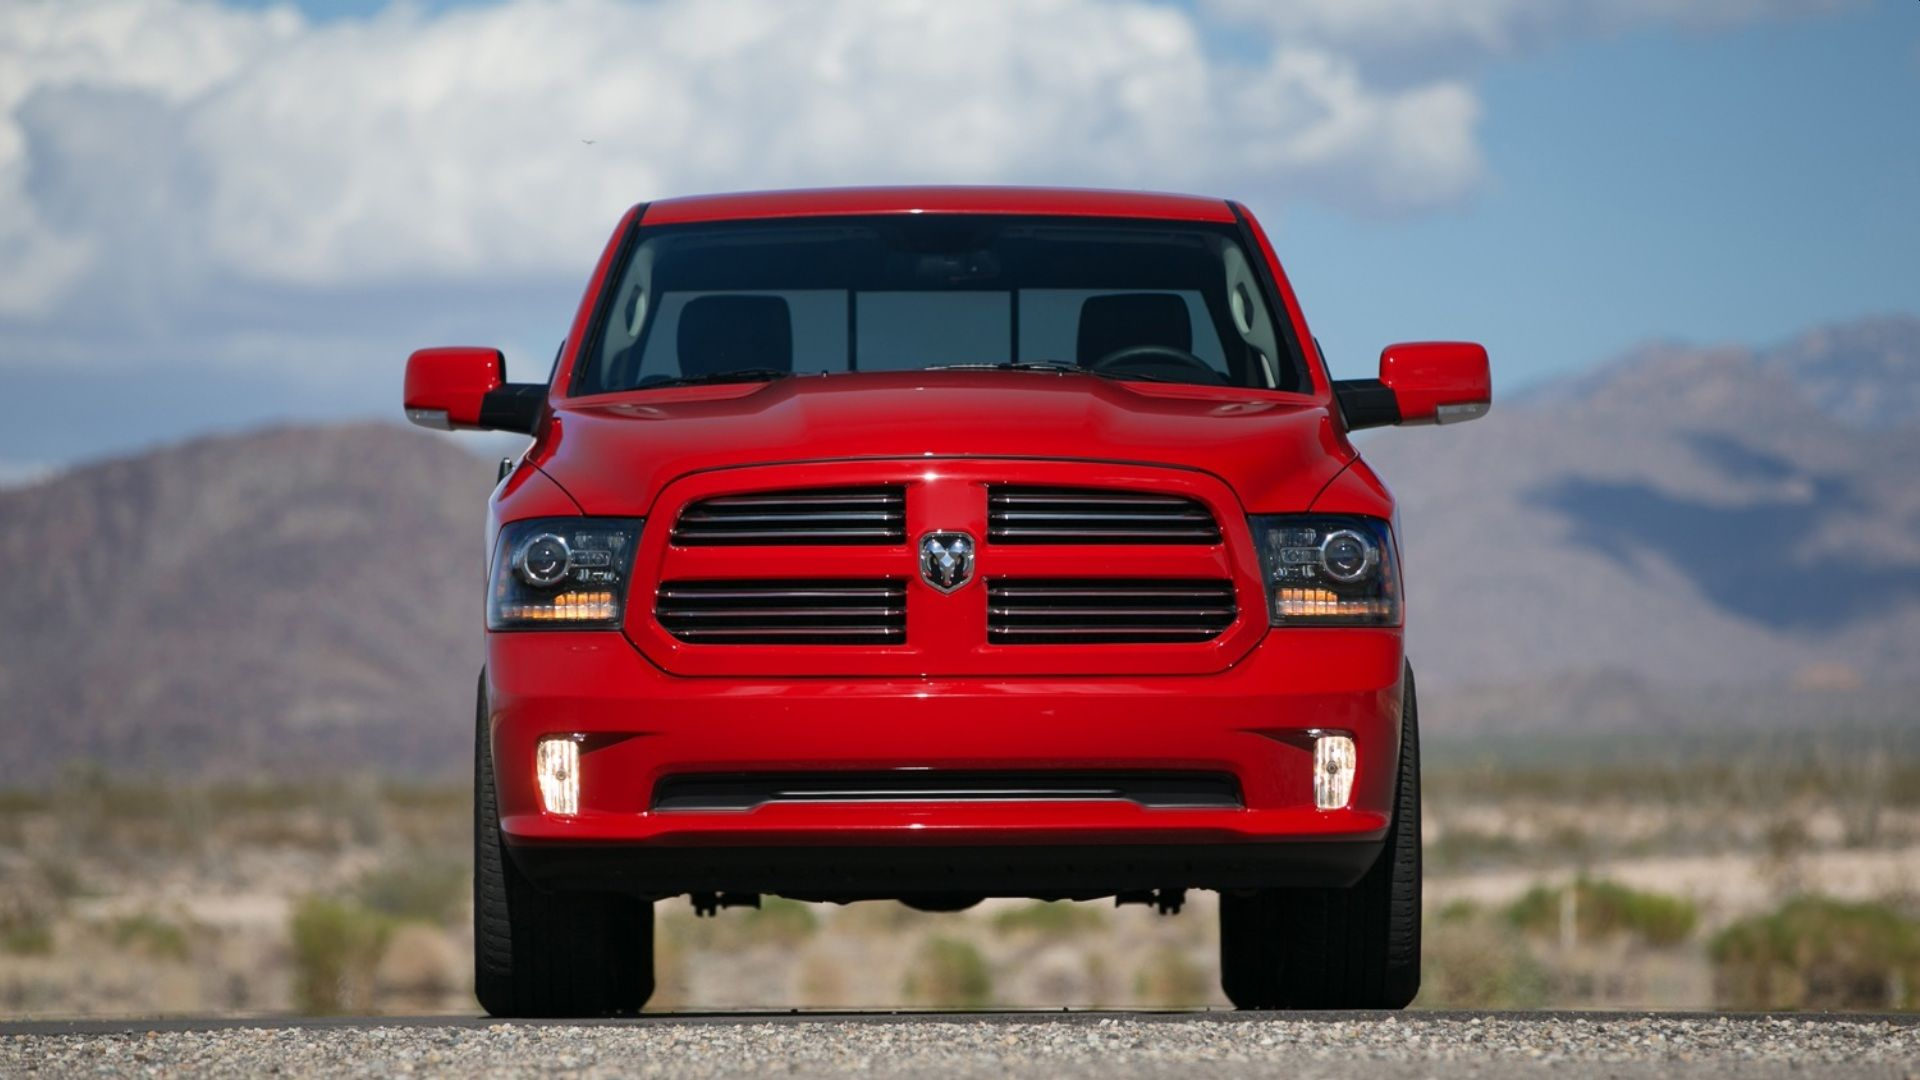 2014 dodge ram 2500 whole mom 2009 2017 dodge ram 1500 parts and - Dodge Ram 2500 2014 Red